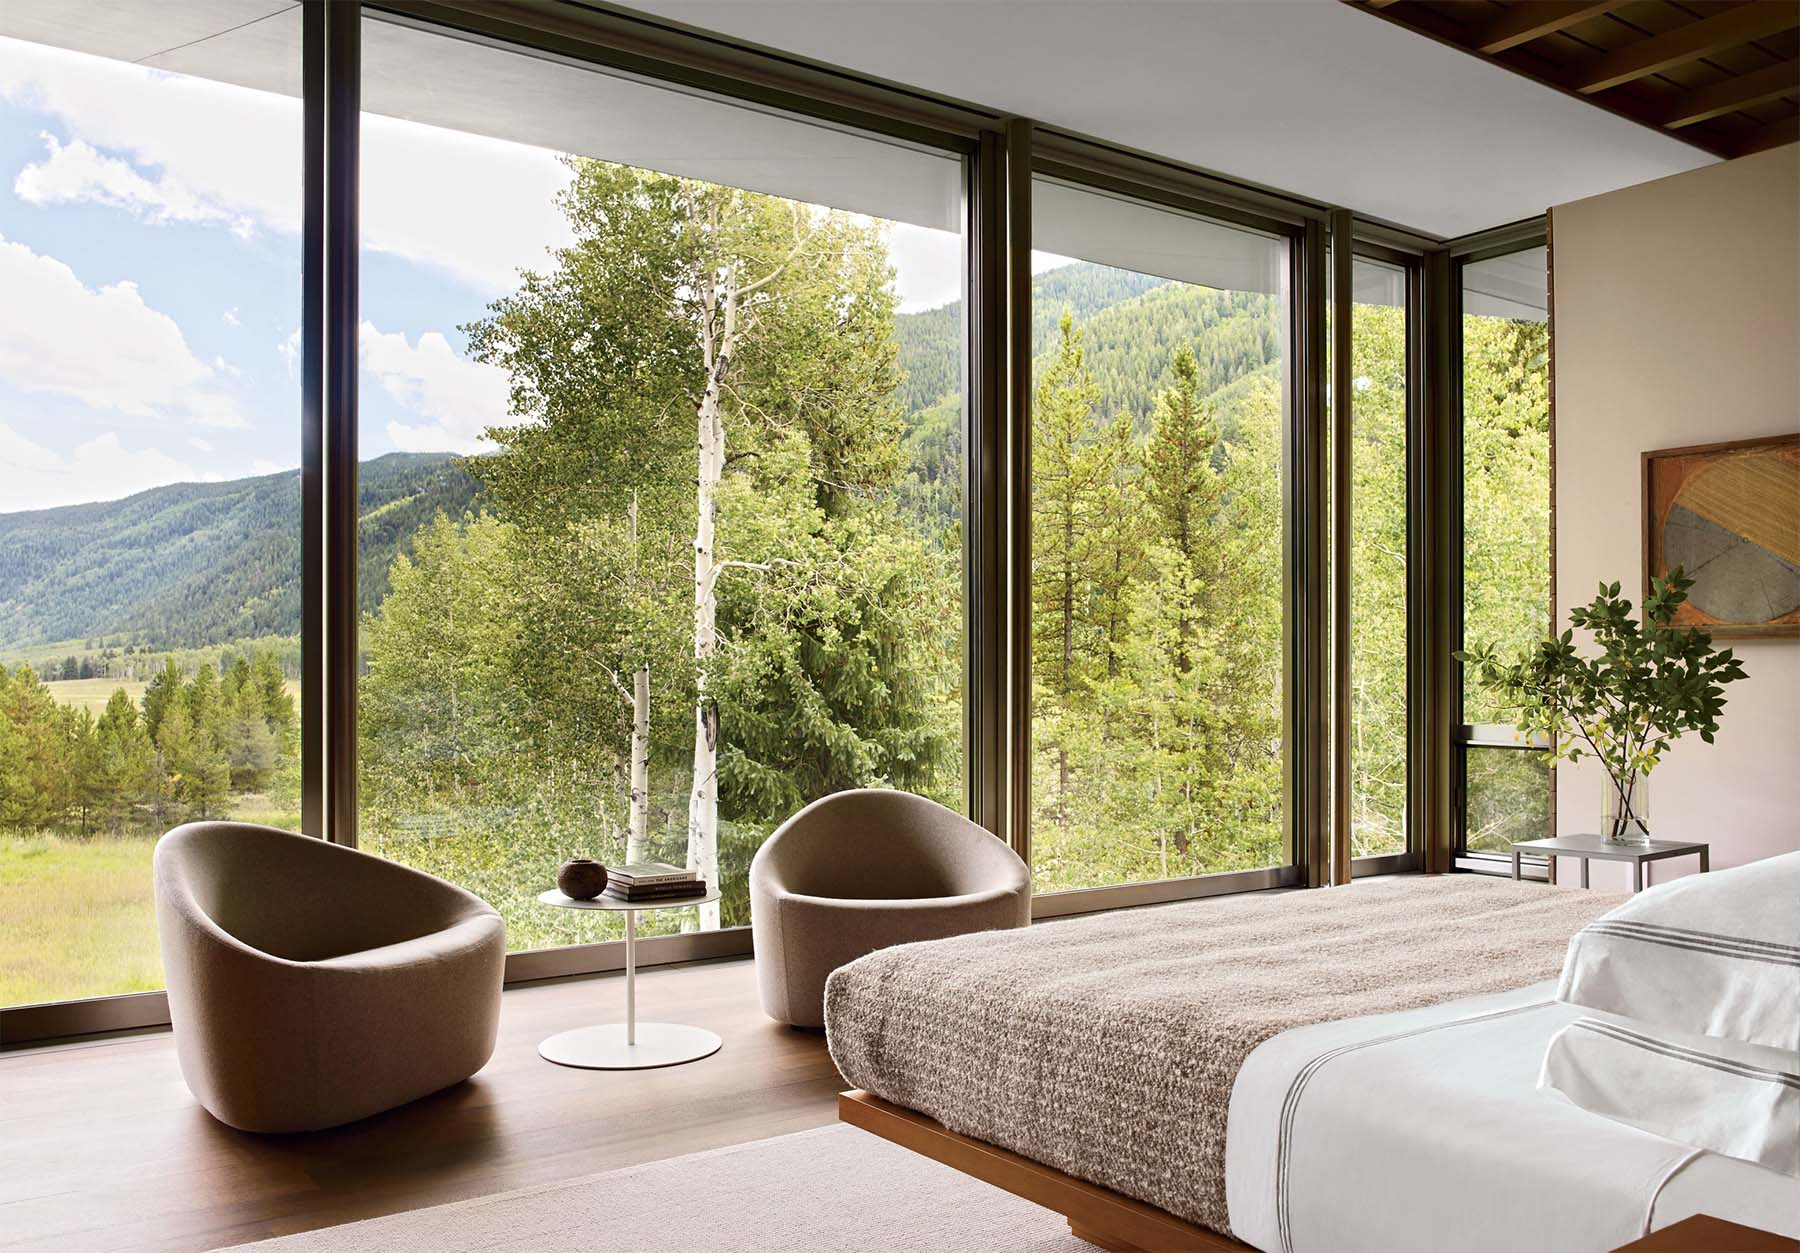 master bedroom design 2019 ideas for master bedroom with a great country landscape view